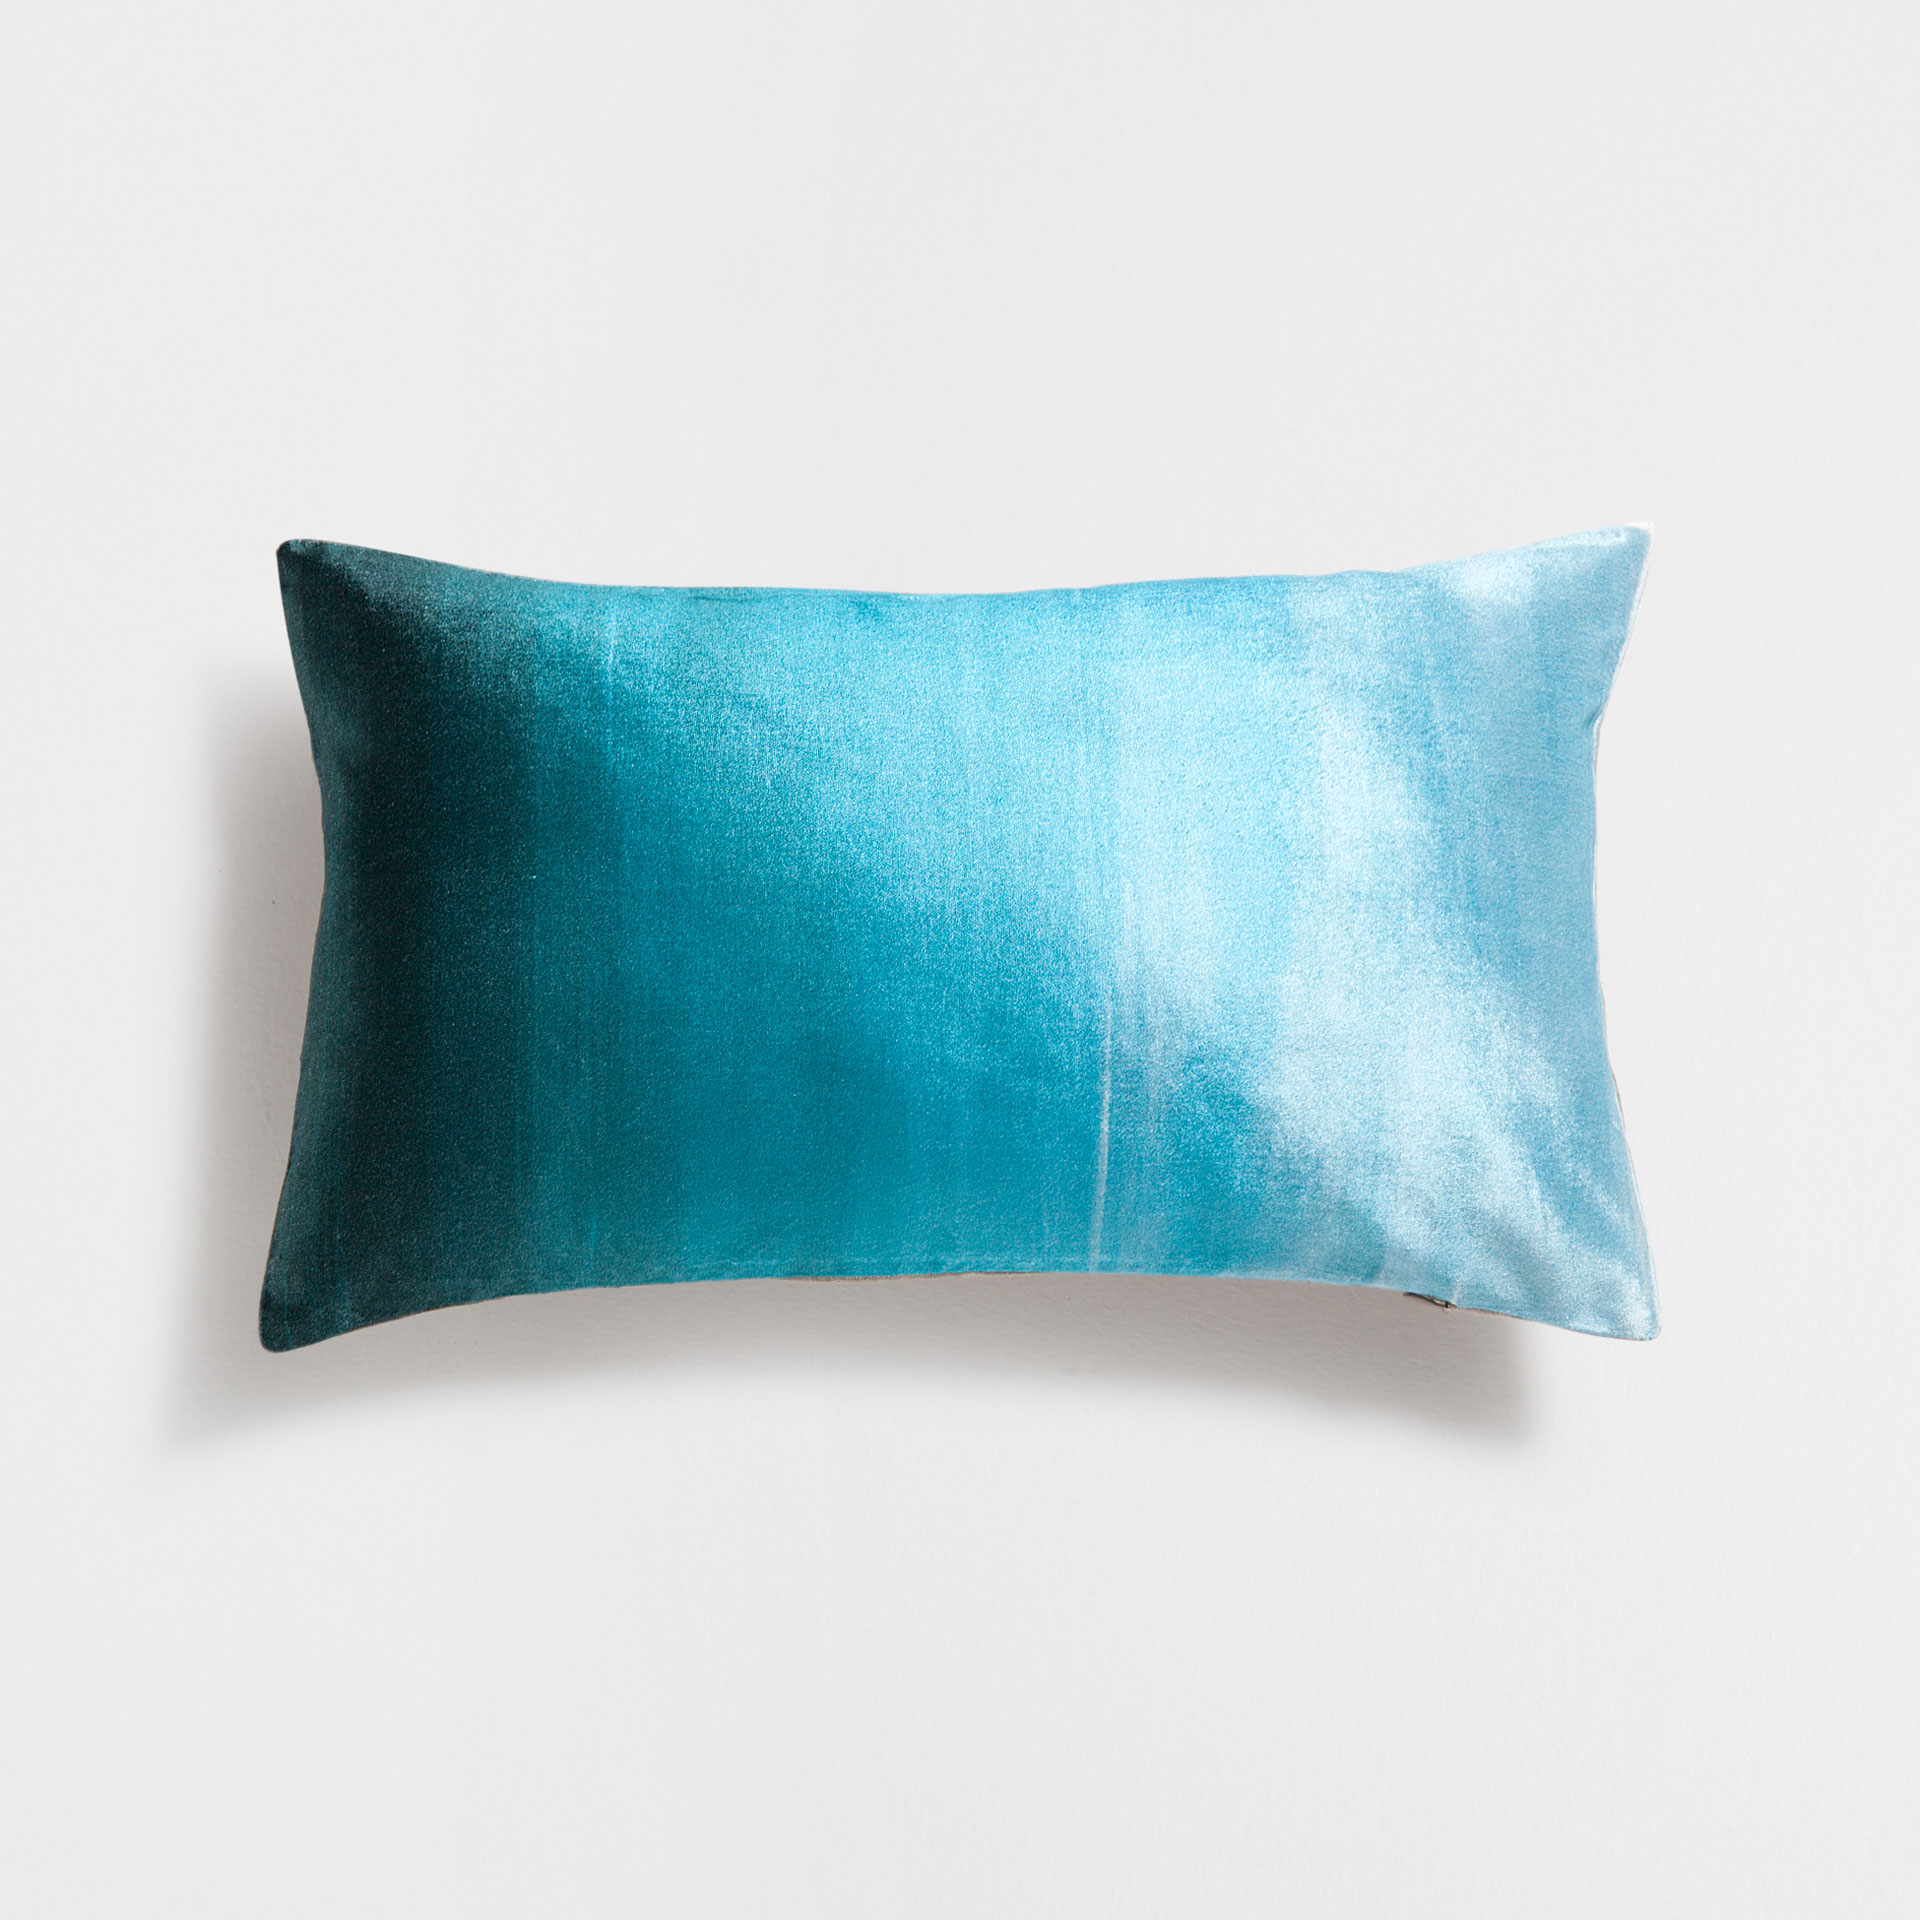 Refreshing blue cushion cover from Zara Home